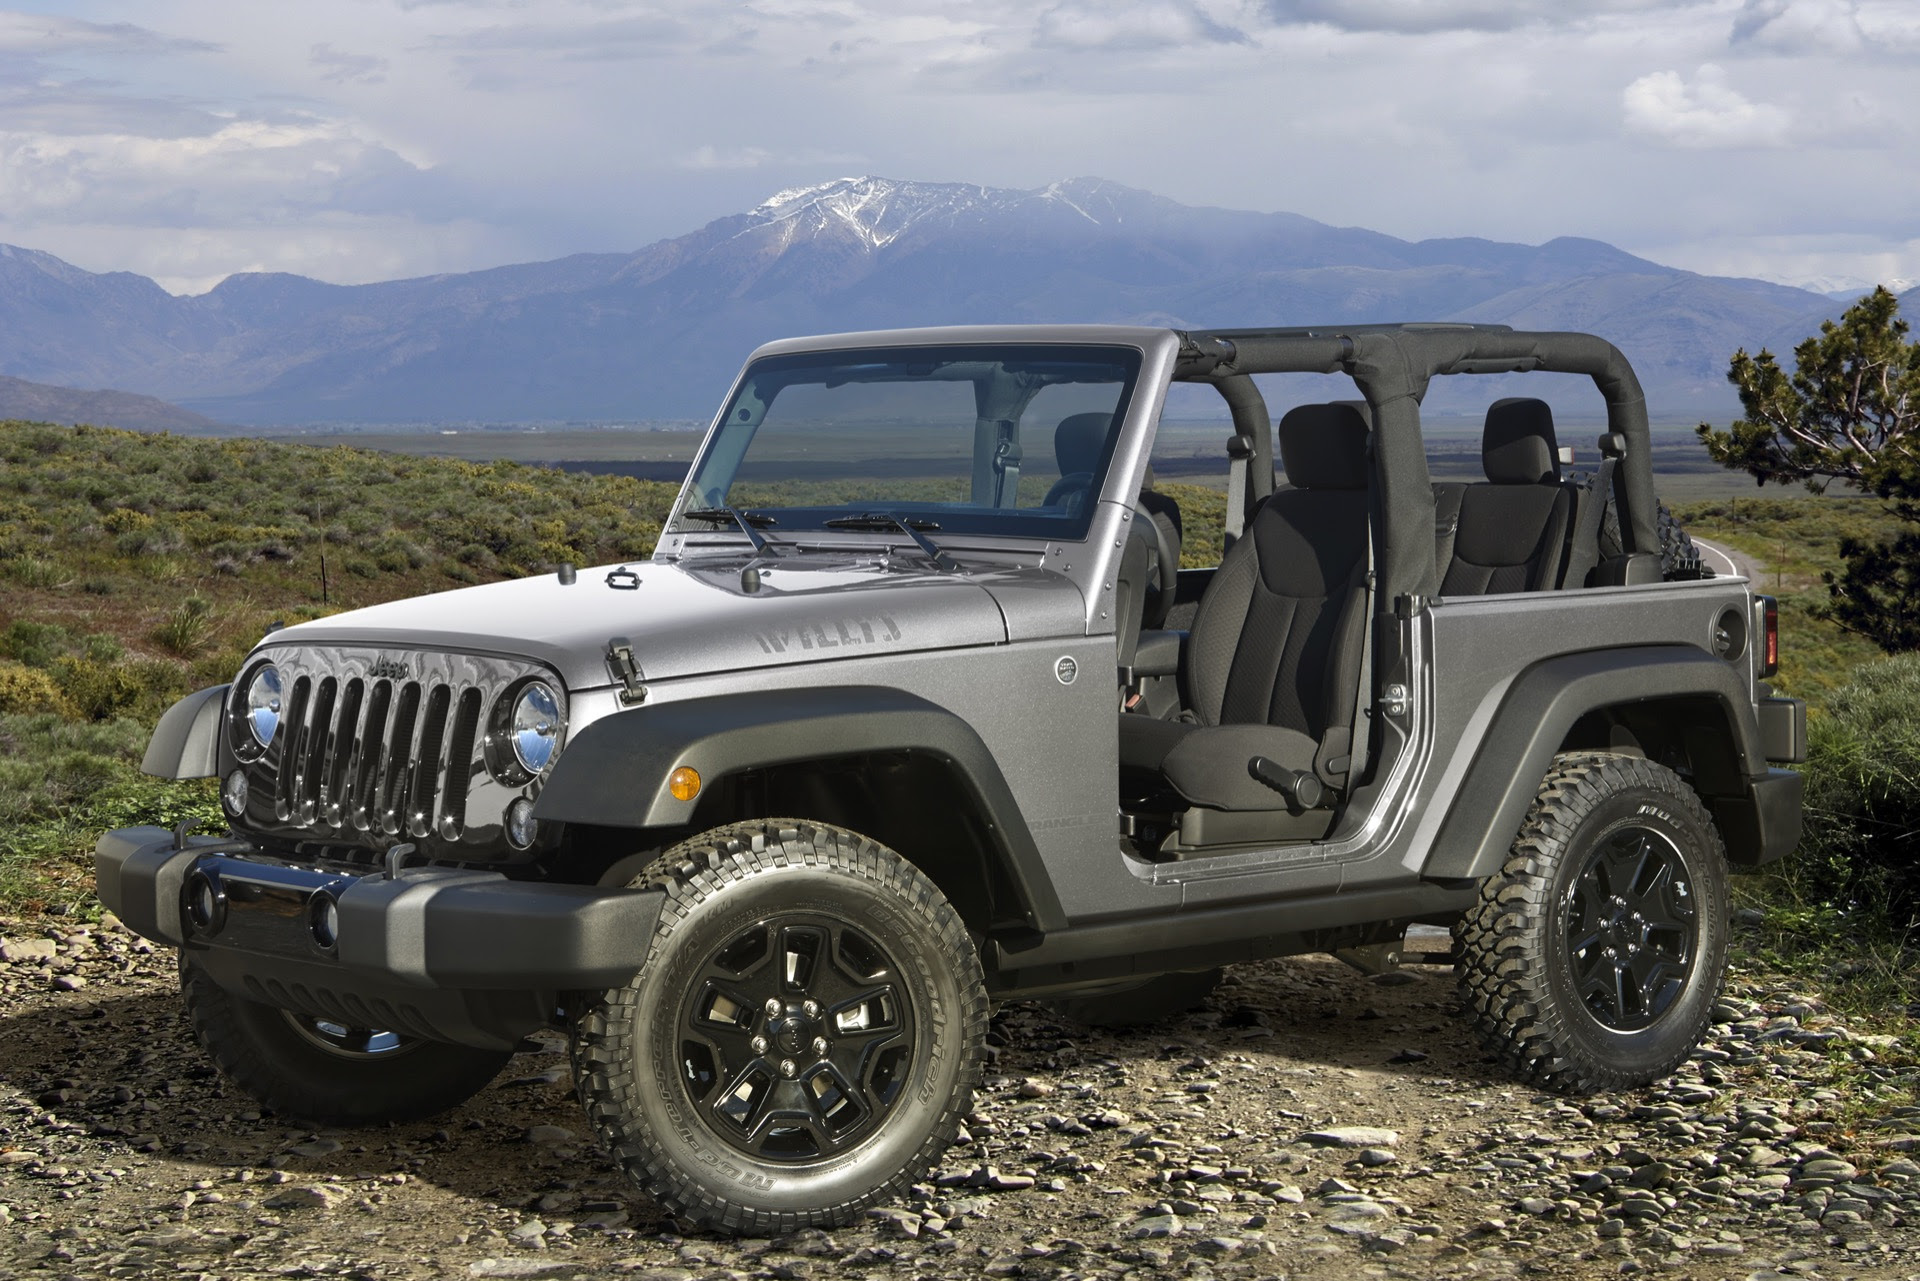 2016 Jeep Wrangler Features Review - The Car Connection